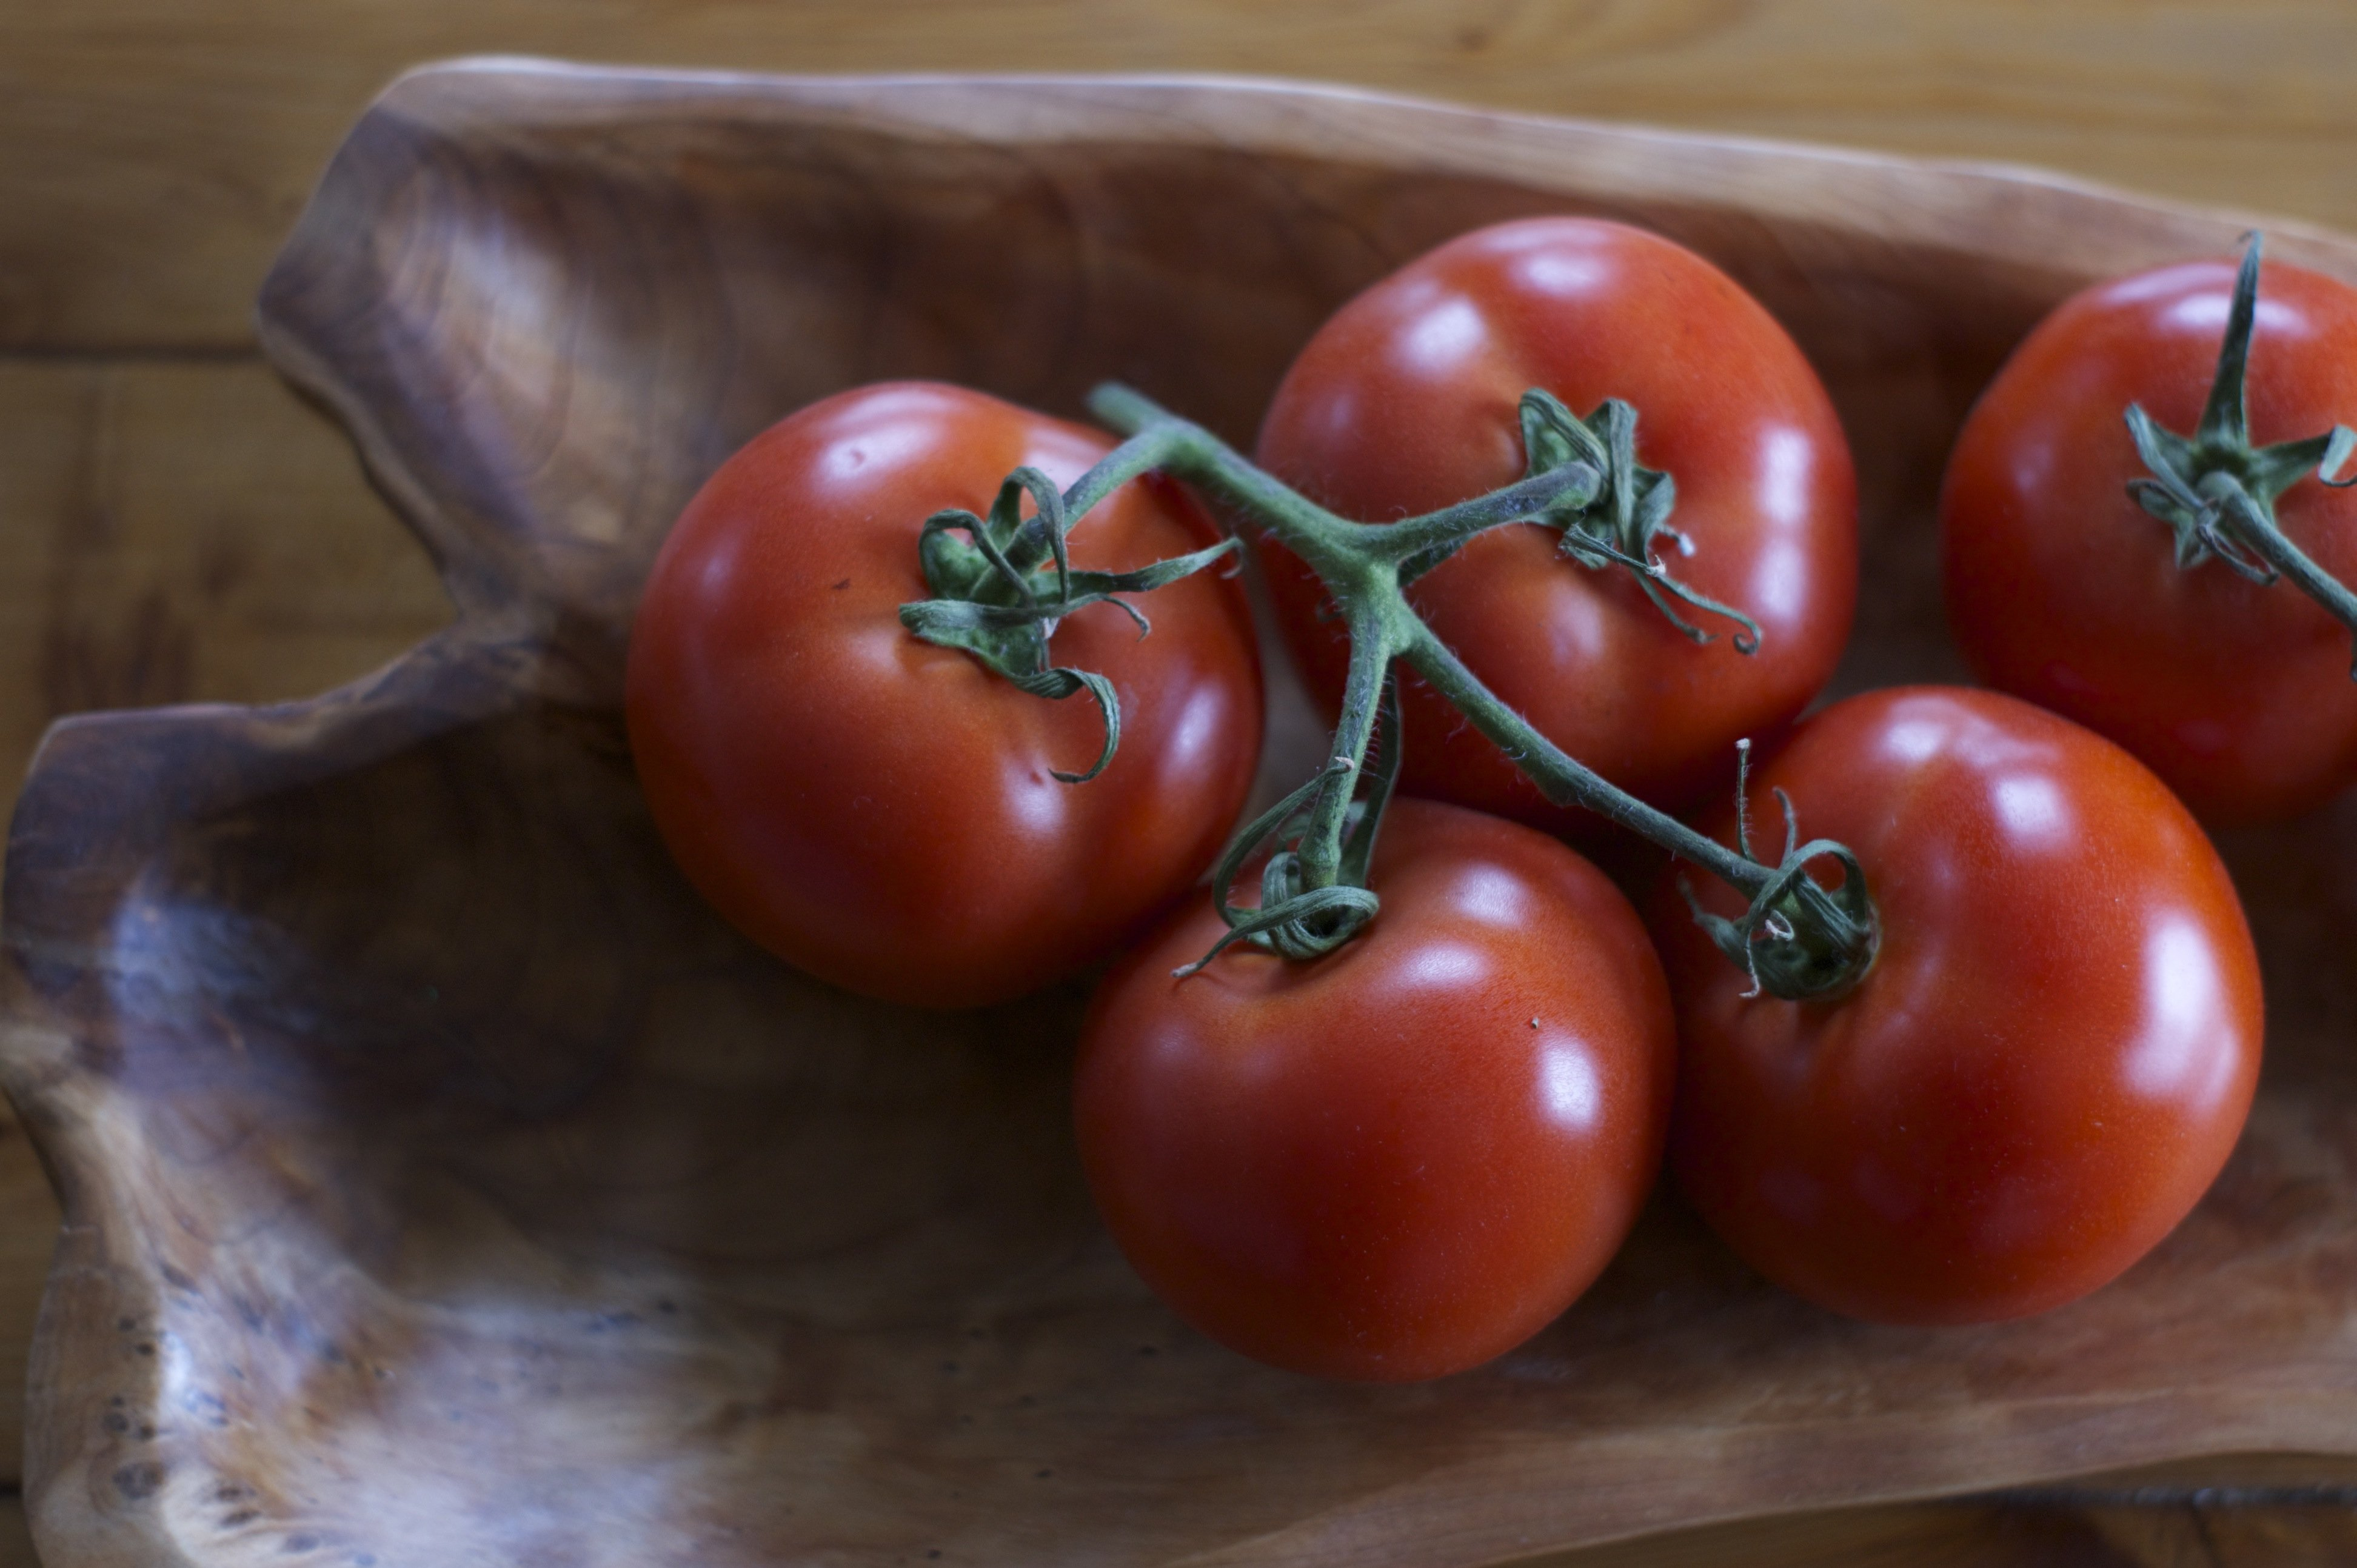 tomatoes in a bowl#1